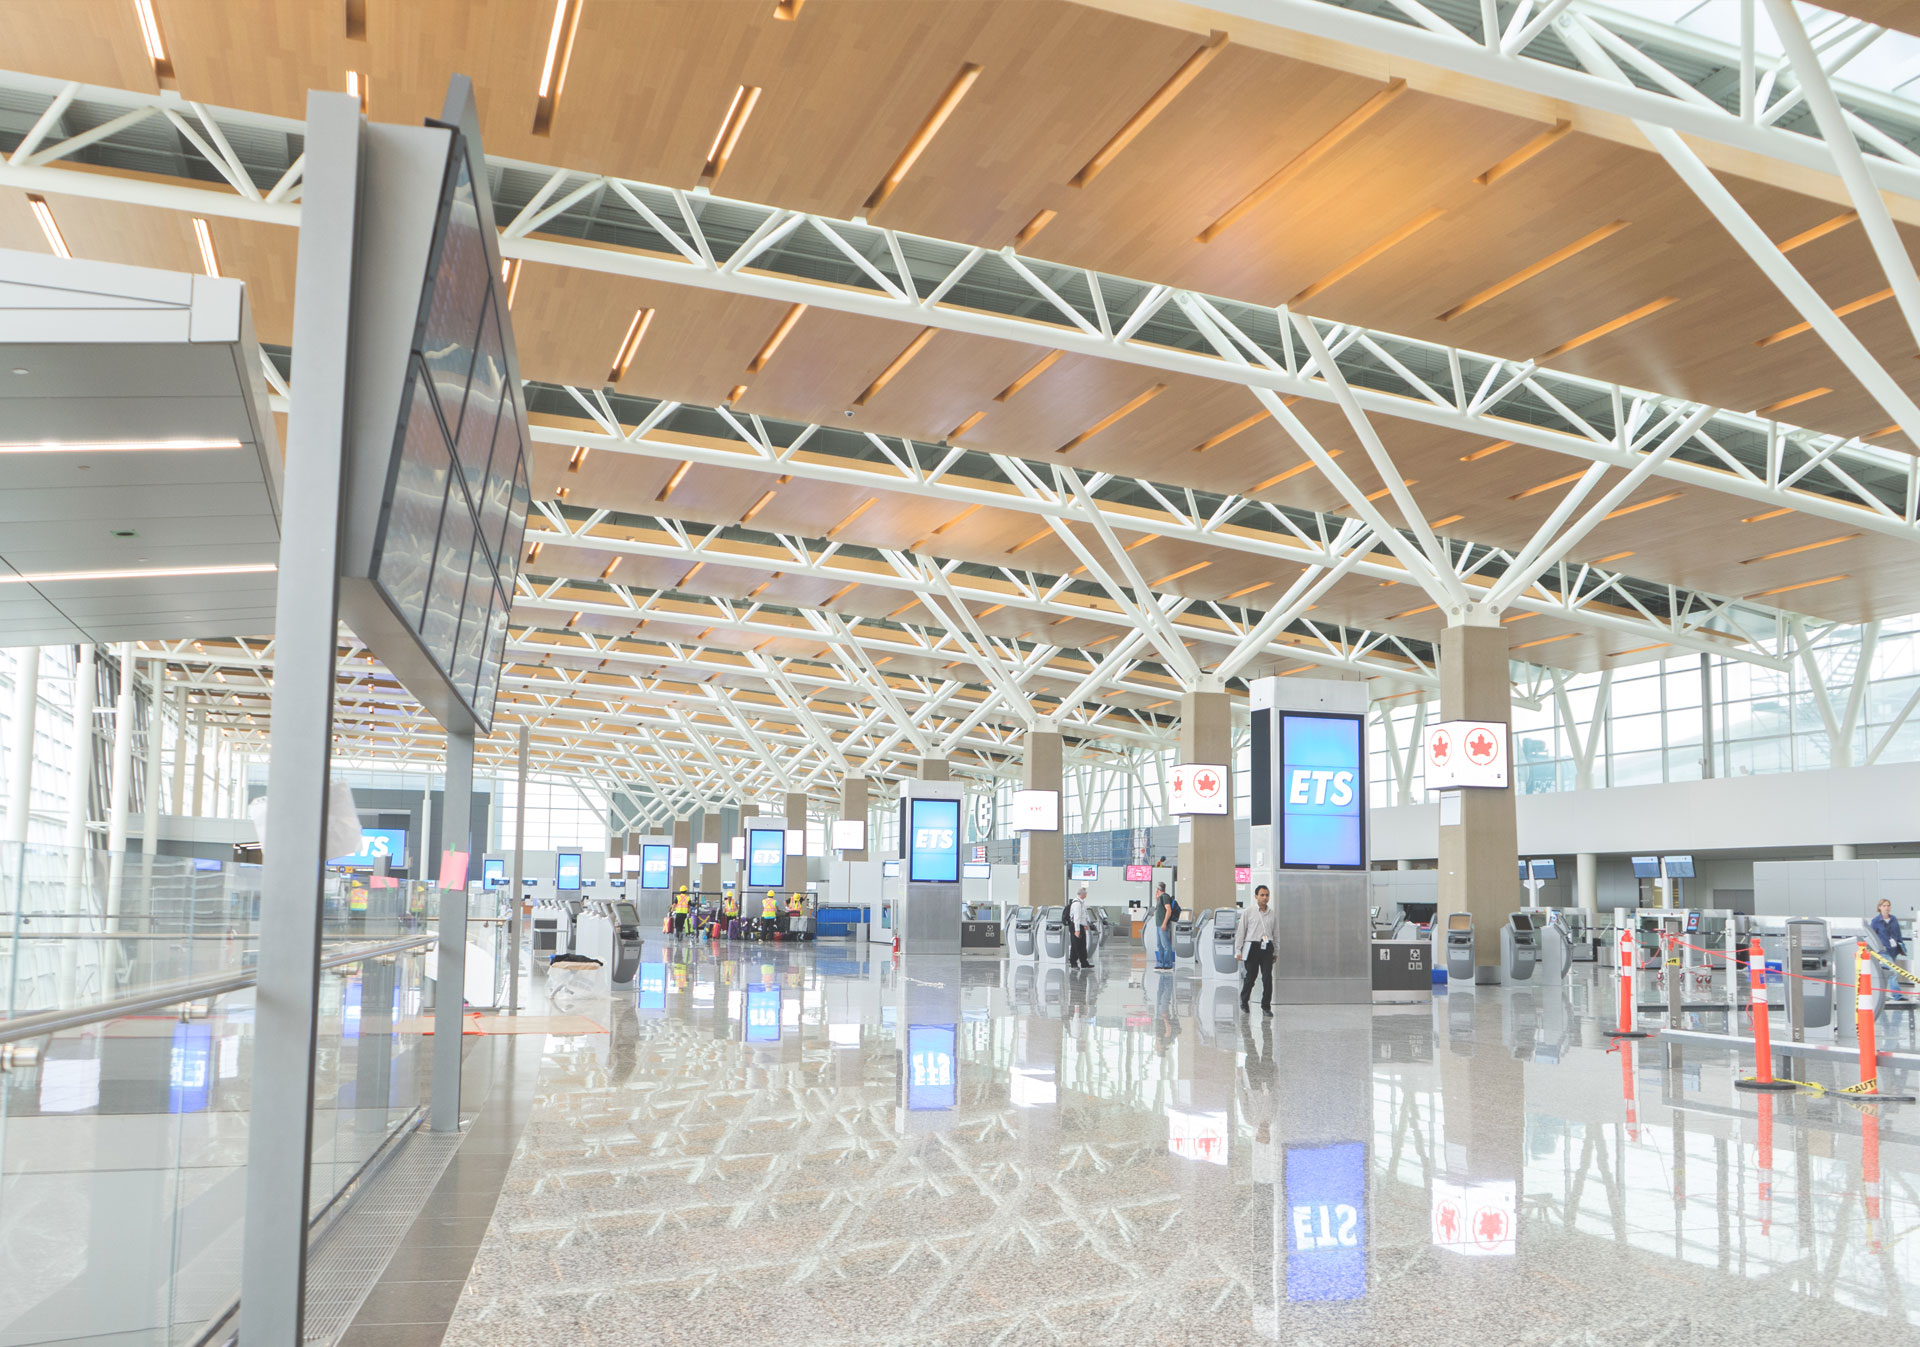 YYC Calgary International Airport (Photo credit: Travel Alberta/Mike Seehagel)